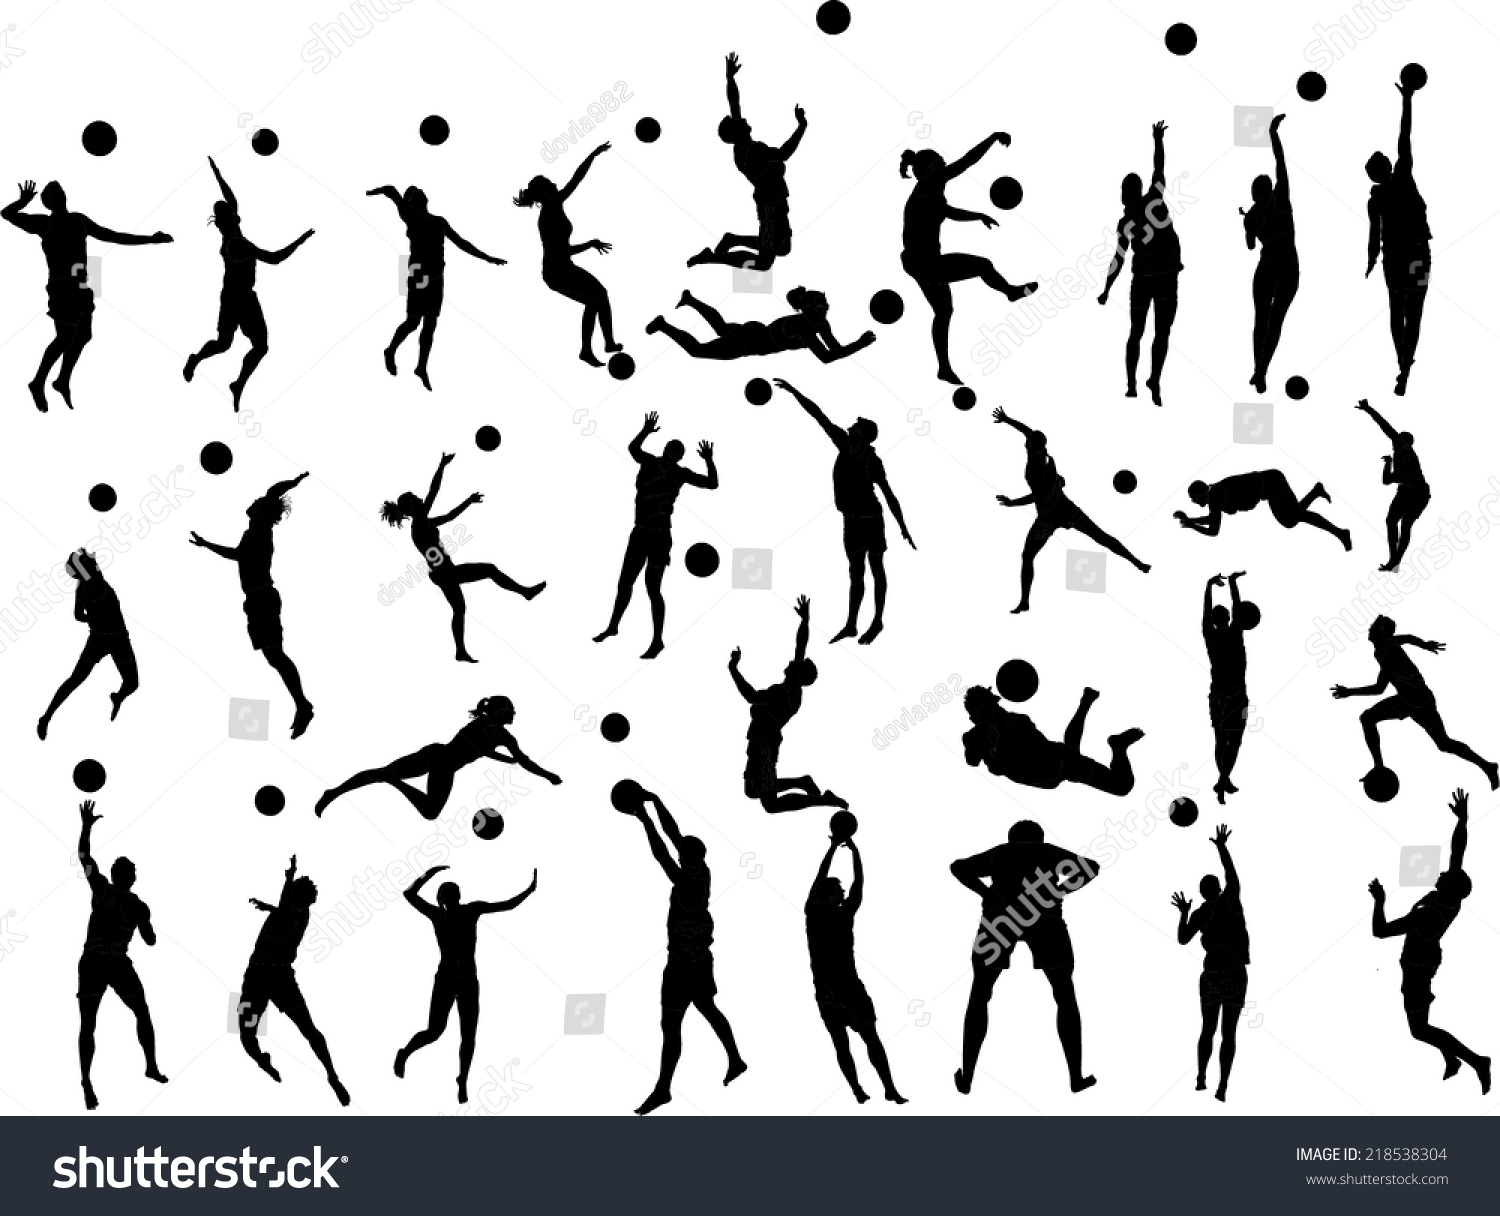 Beach Volleyball Players Vector Silhouette Illustration